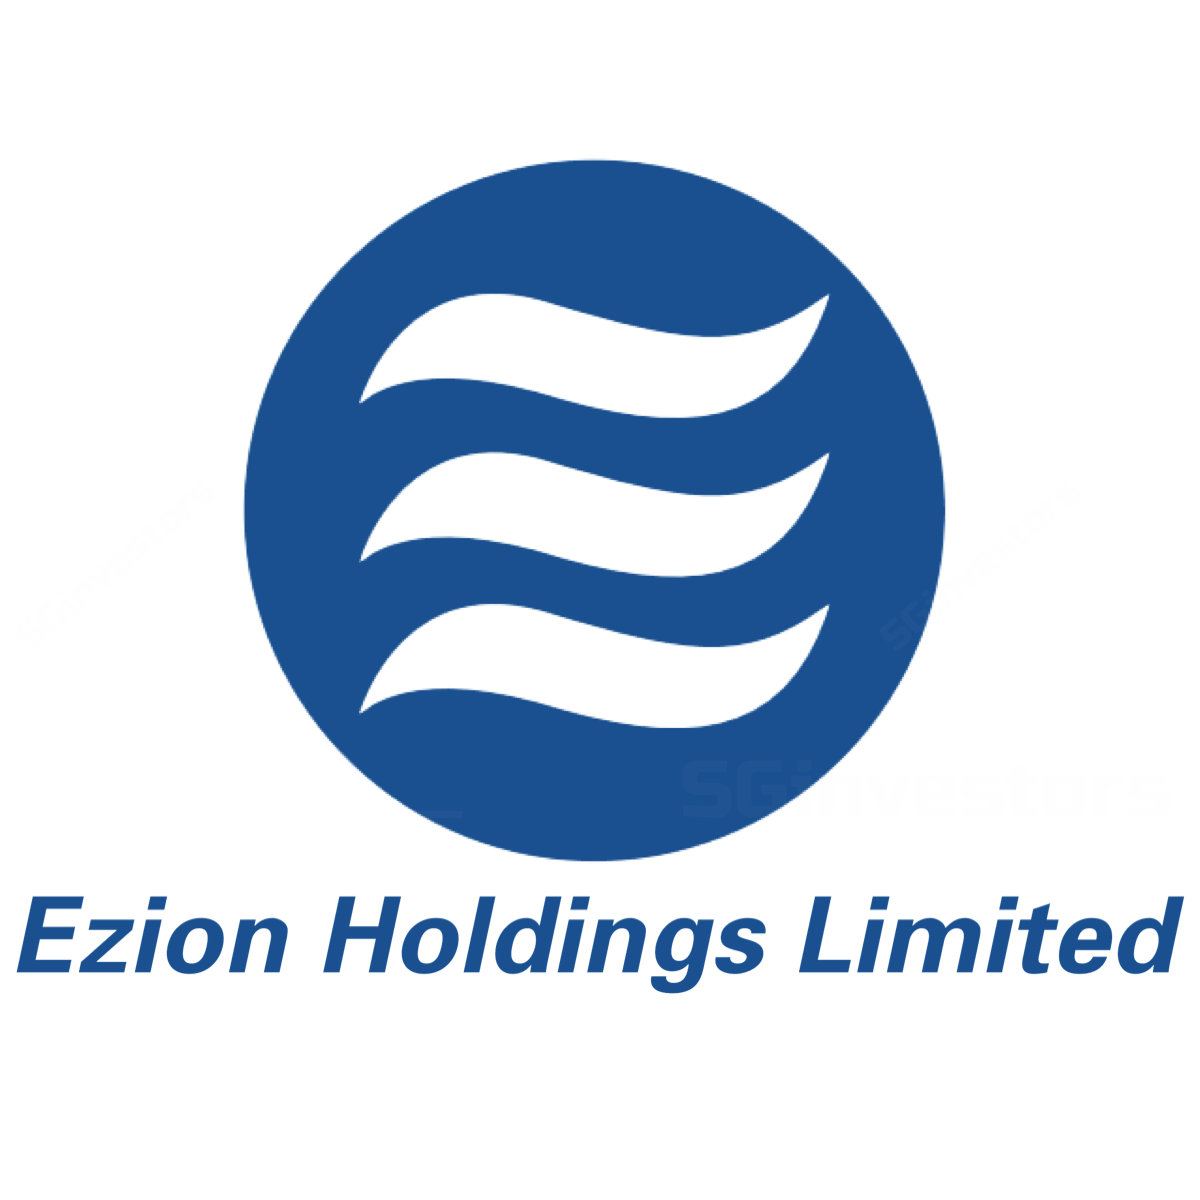 Ezion Holdings - OCBC Investment 2017-05-12: SEEKING CLARITY FOR 2H17